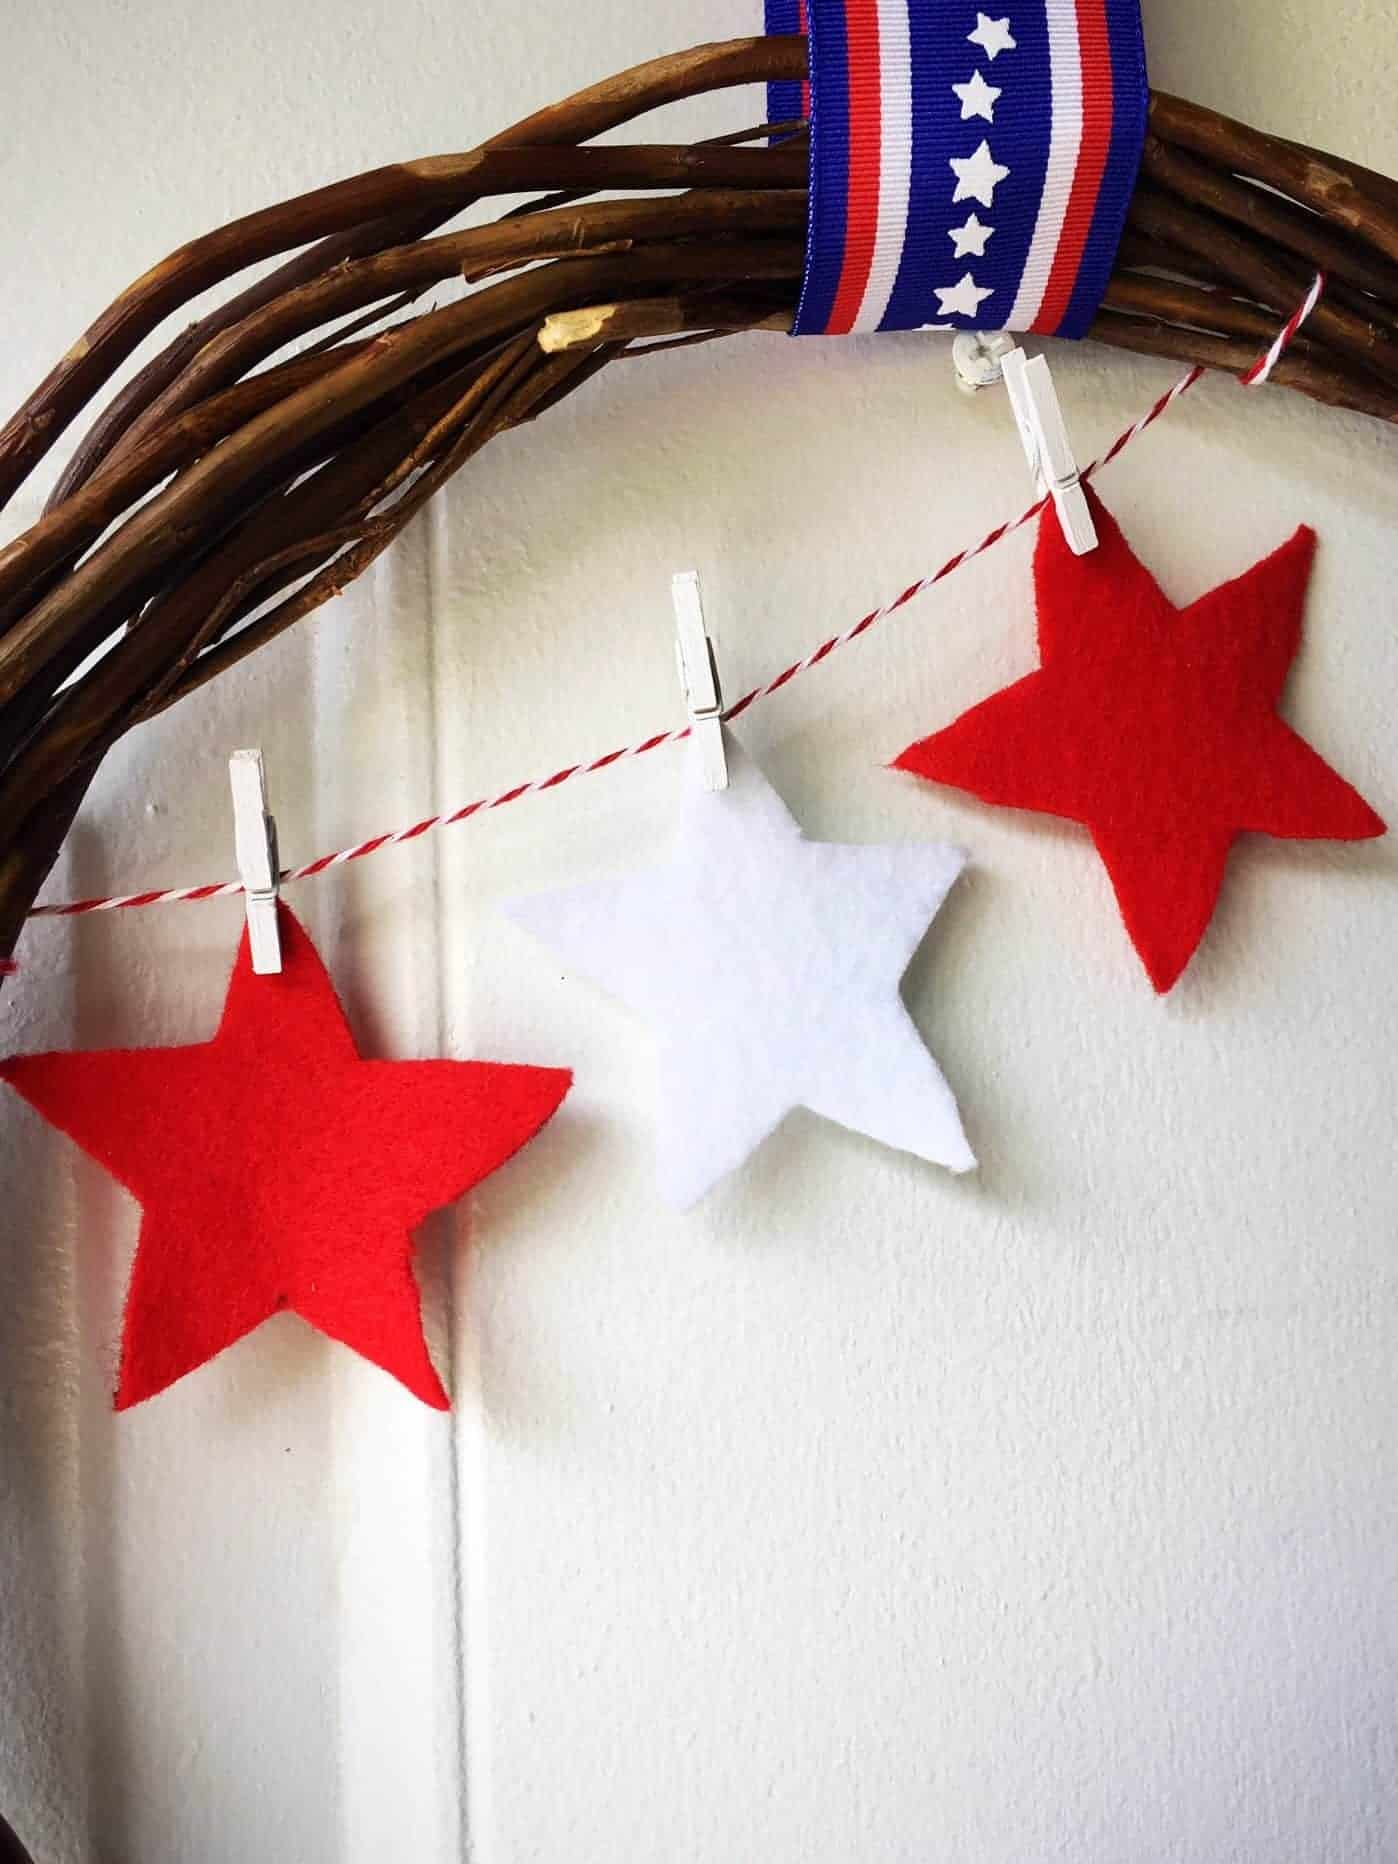 Looking for an easy DIY to dress up your front door decor for the 4th of July? Check out my step-by-step tutorial on how to make a patriotic Fourth of July Pinwheel Wreath featuring a grapevine wreath, gorgeous red, white, and blue felt pinwheels, and a stars and stripes ribbon. #fourthofjulycraft #4thofjulycraft #fourthofjulywreath #patrioticcraft #fourthofjuly #redwhiteandblue #easywreath